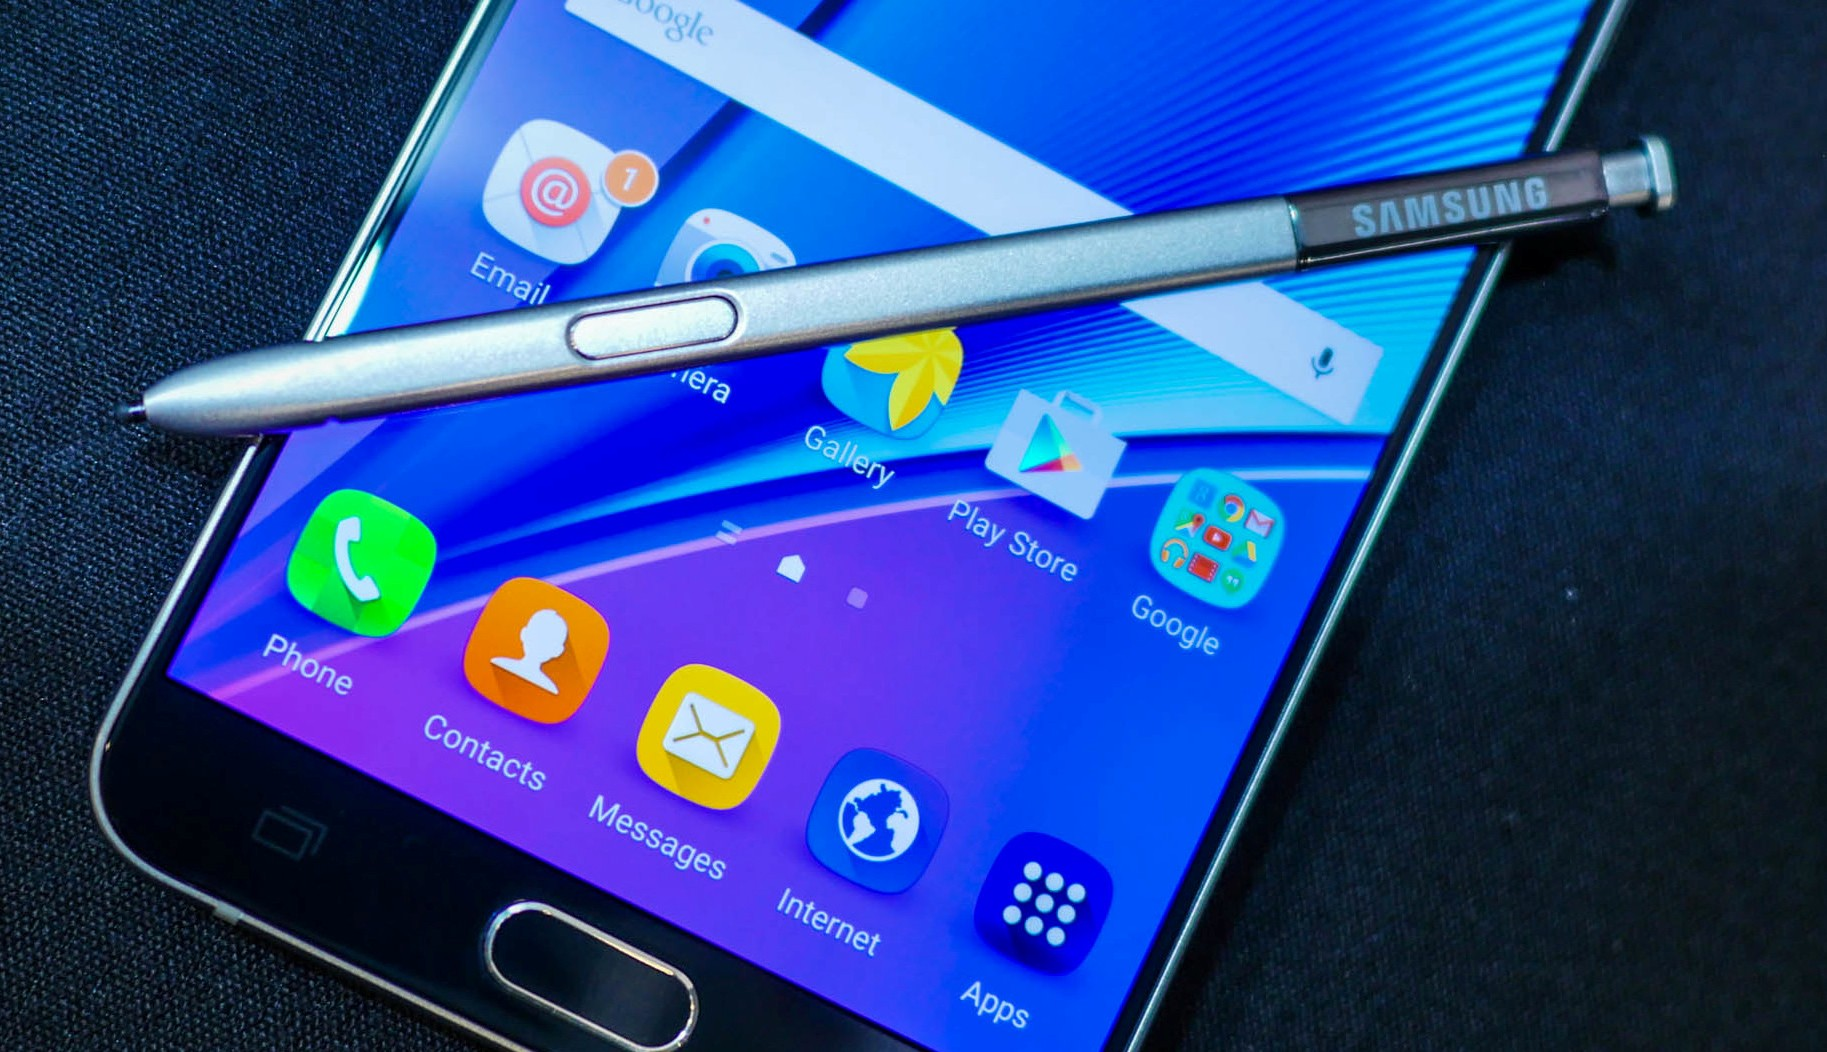 samsung-galaxy-note-5-first-look-aa-35-of-41-e1439701327949